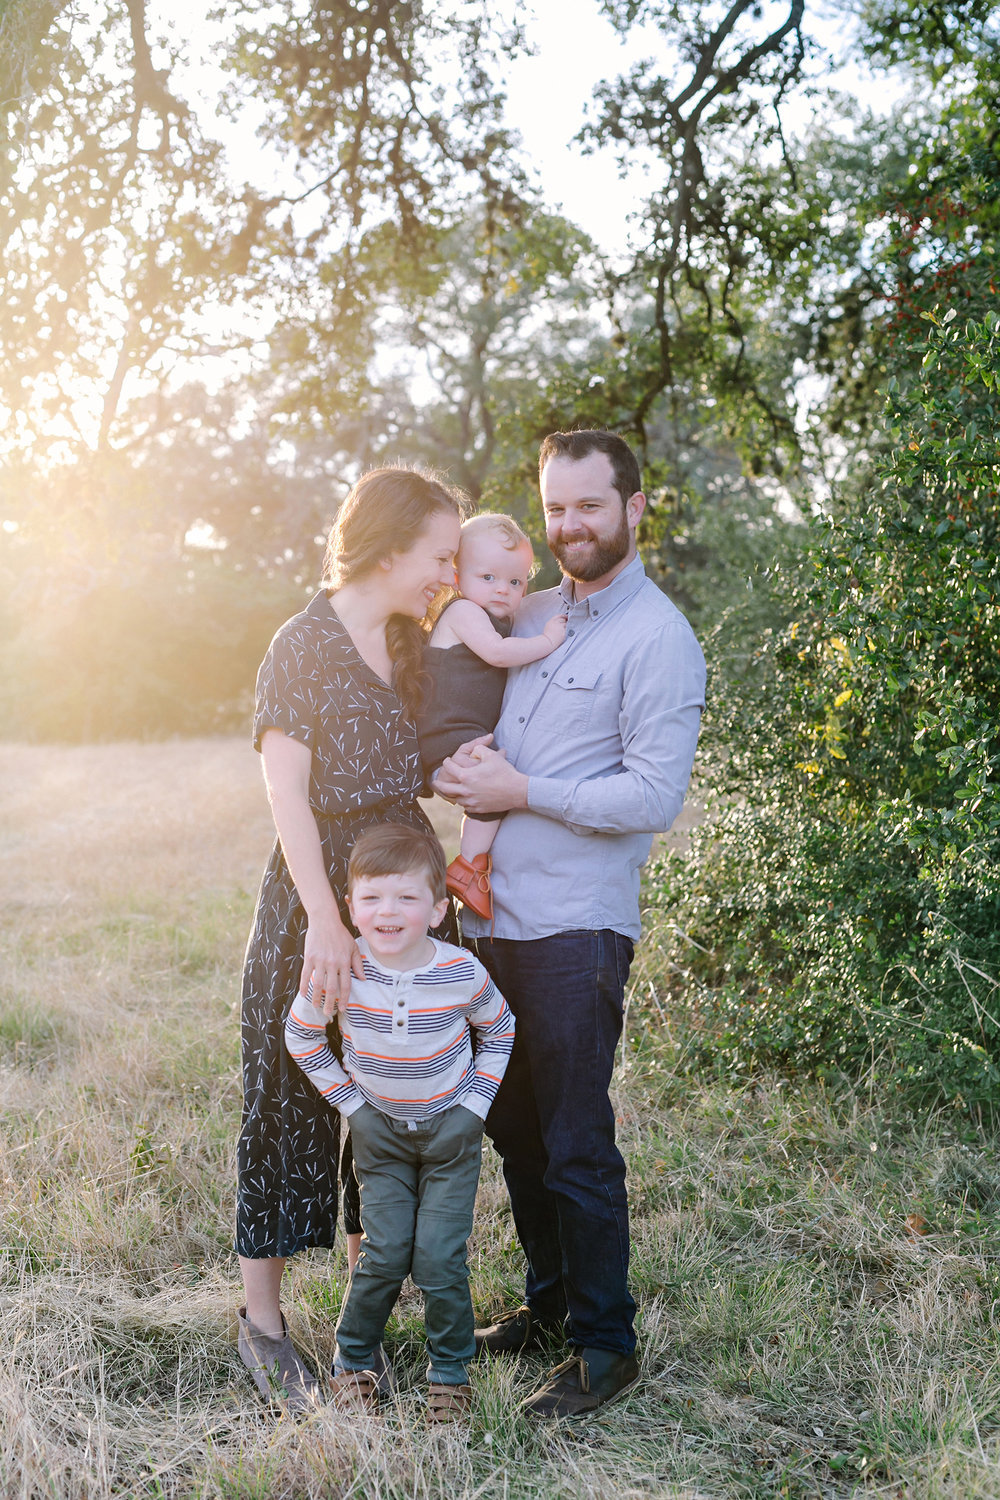 austin-family-portraits-photographer-kimberly-brooke-01.jpg